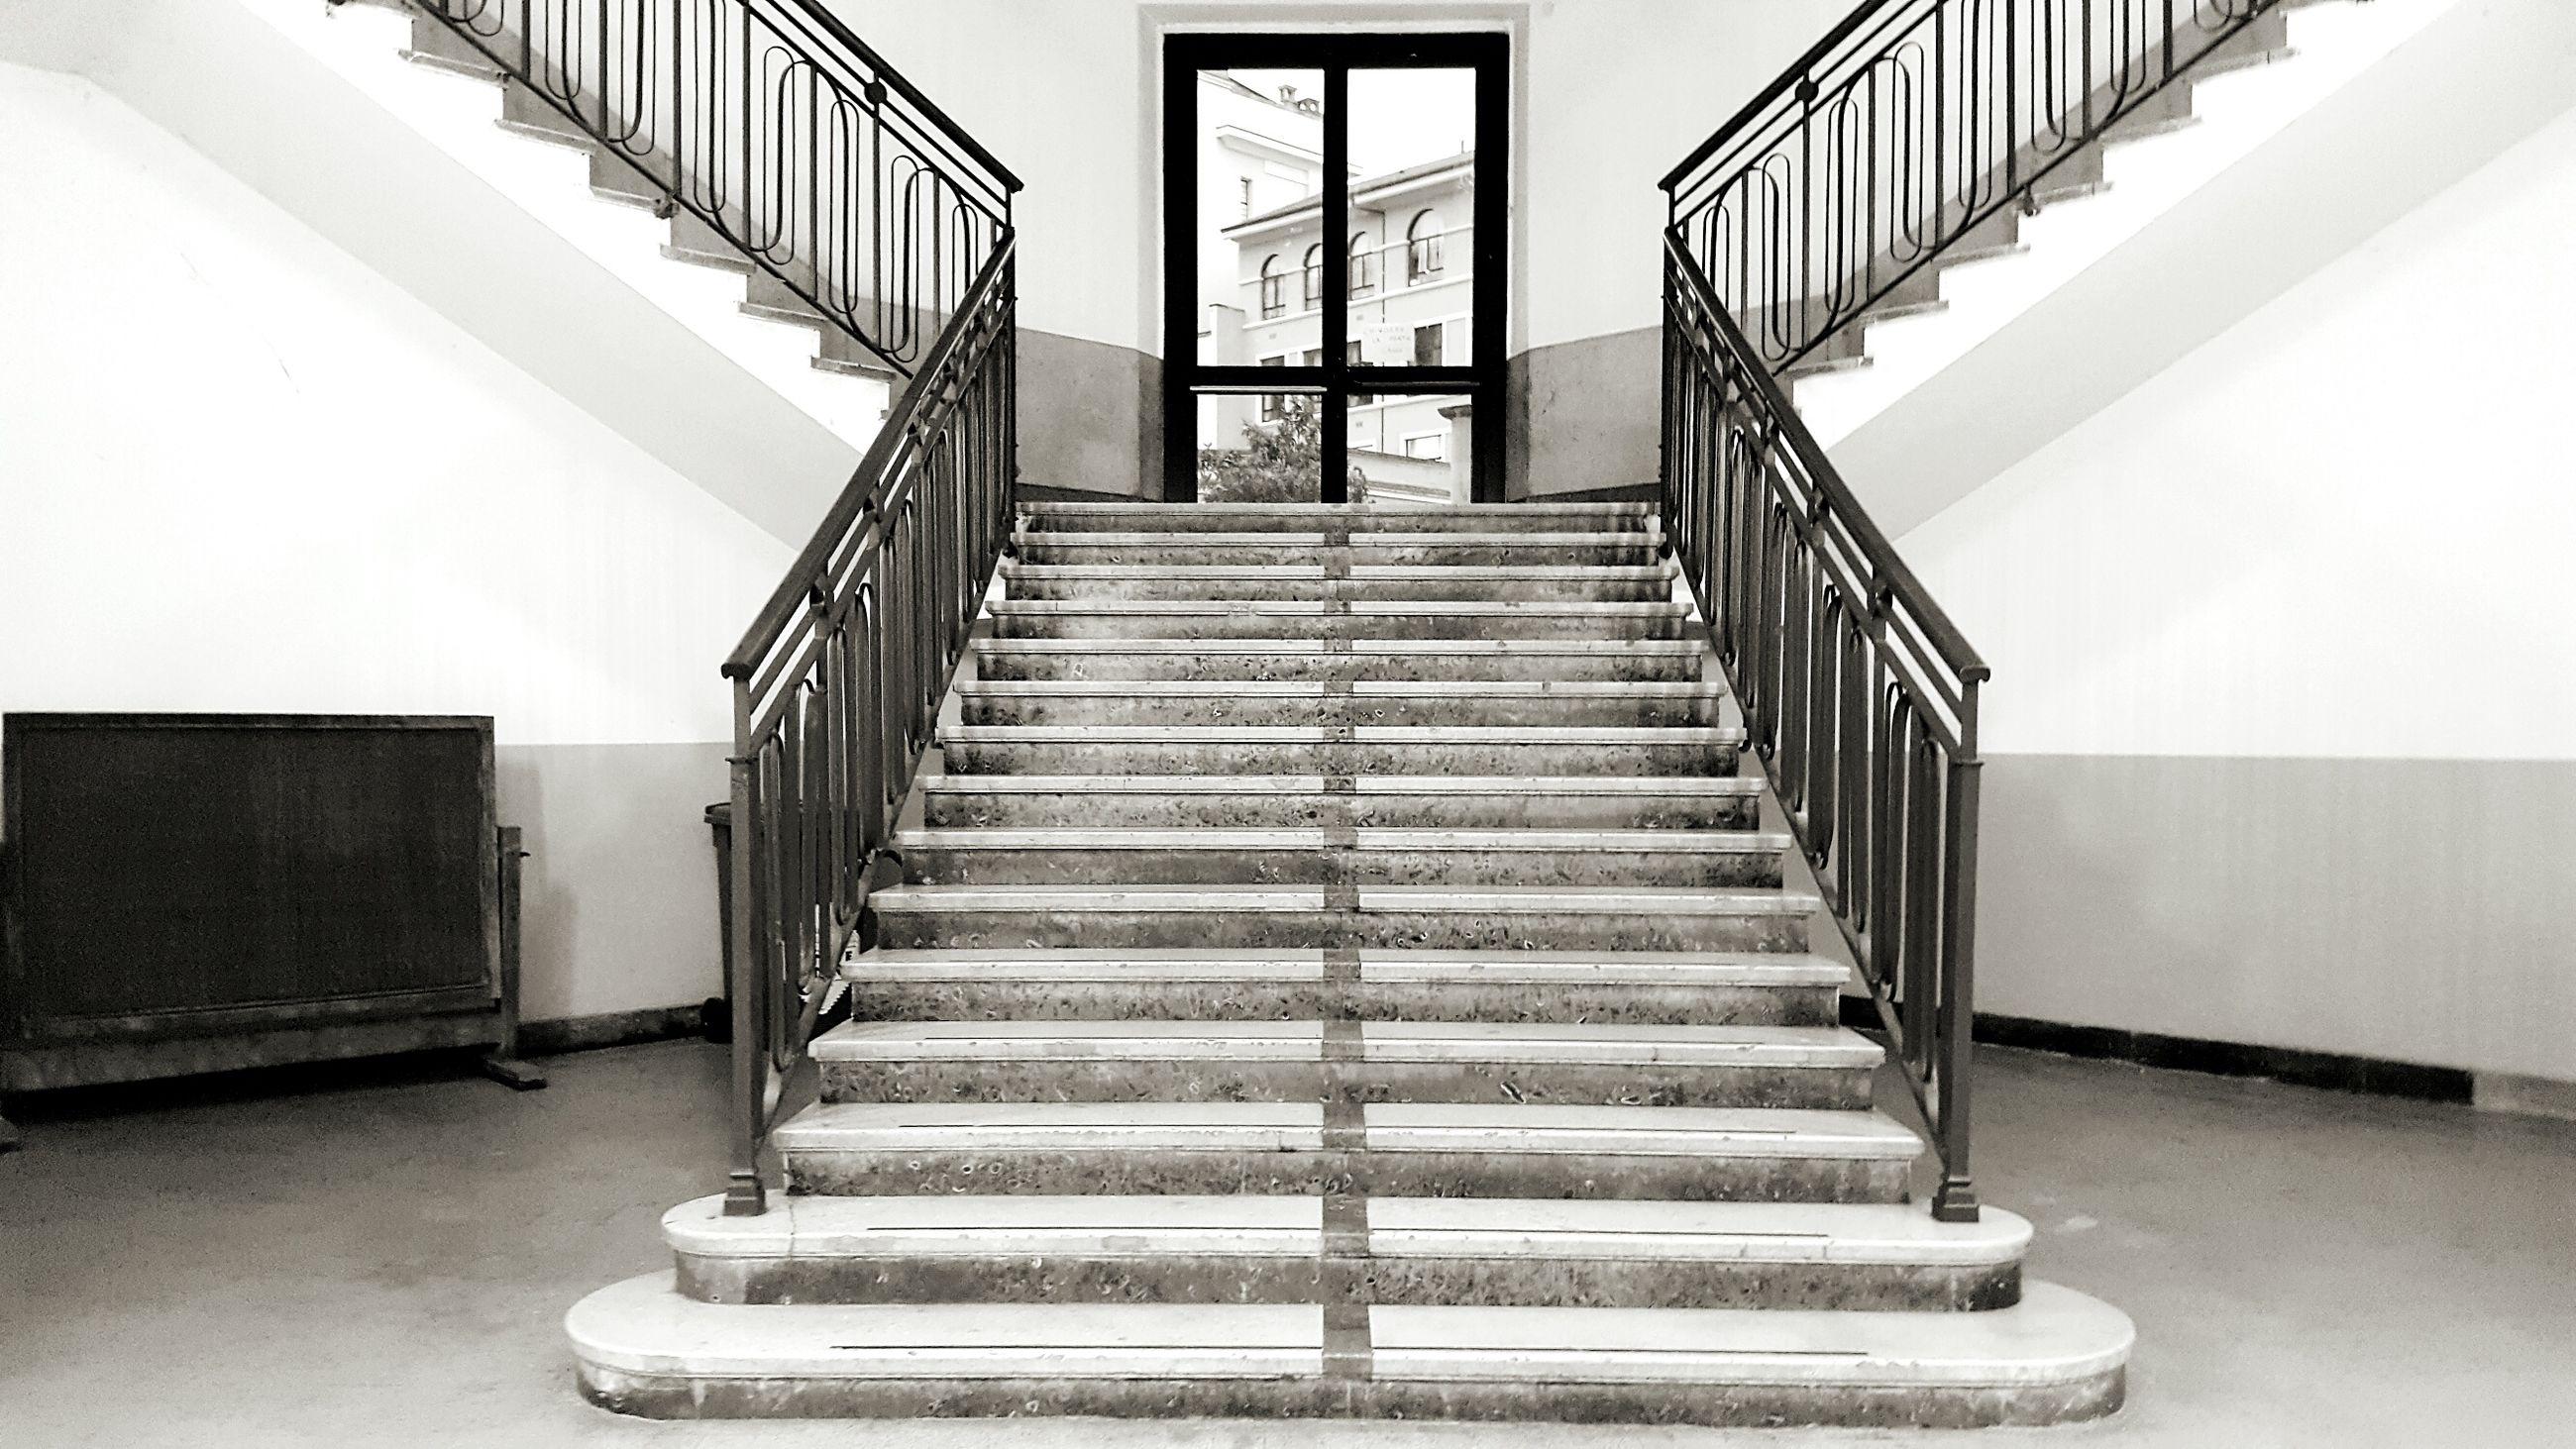 staircase, steps and staircases, steps, railing, the way forward, built structure, indoors, architecture, stairs, stairway, no people, day